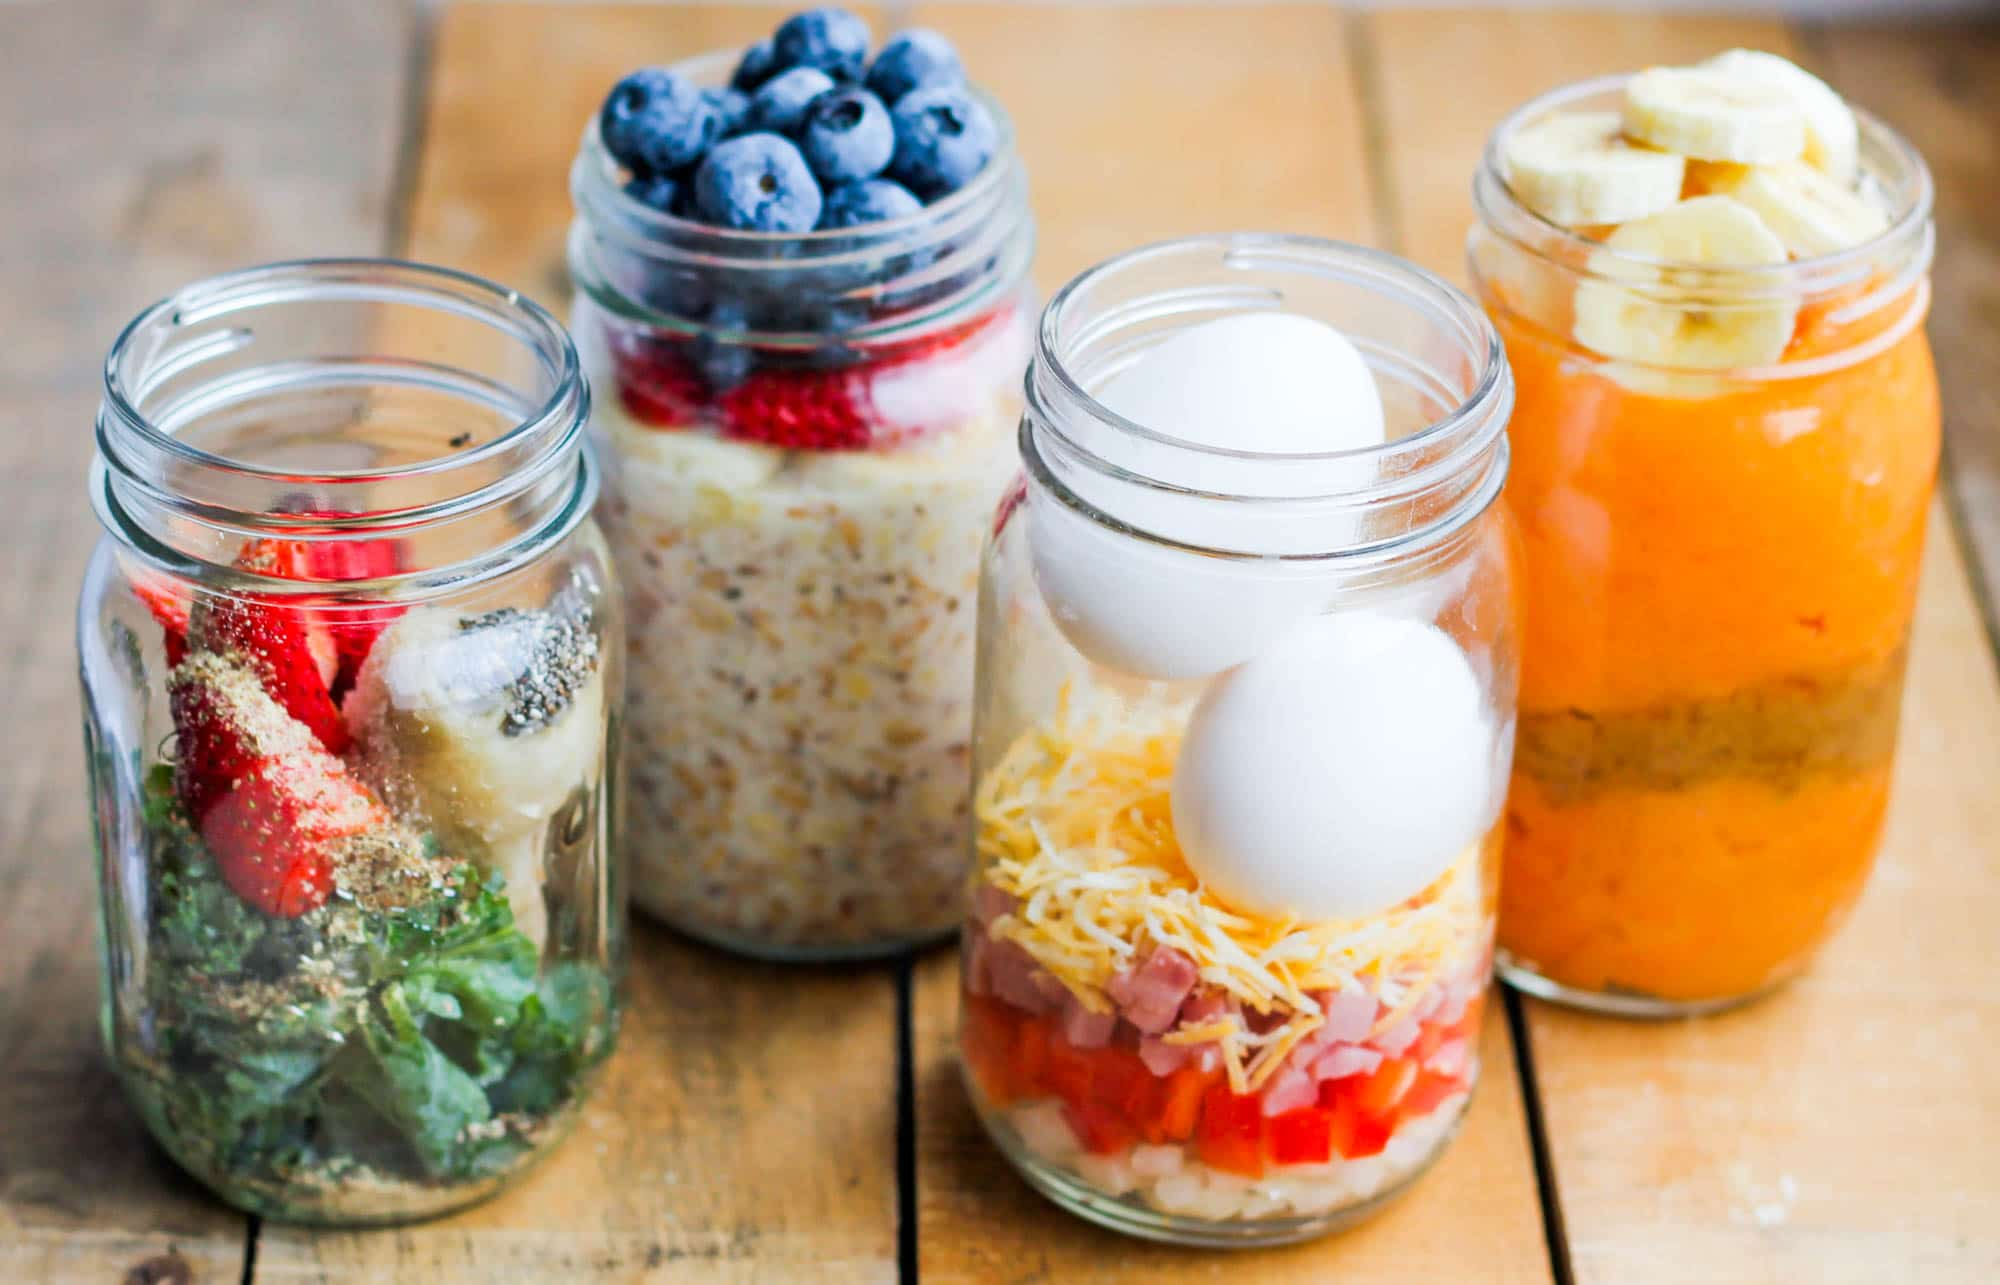 make ahead healthy breakfast meal prep jars 4 ways smile sandwich